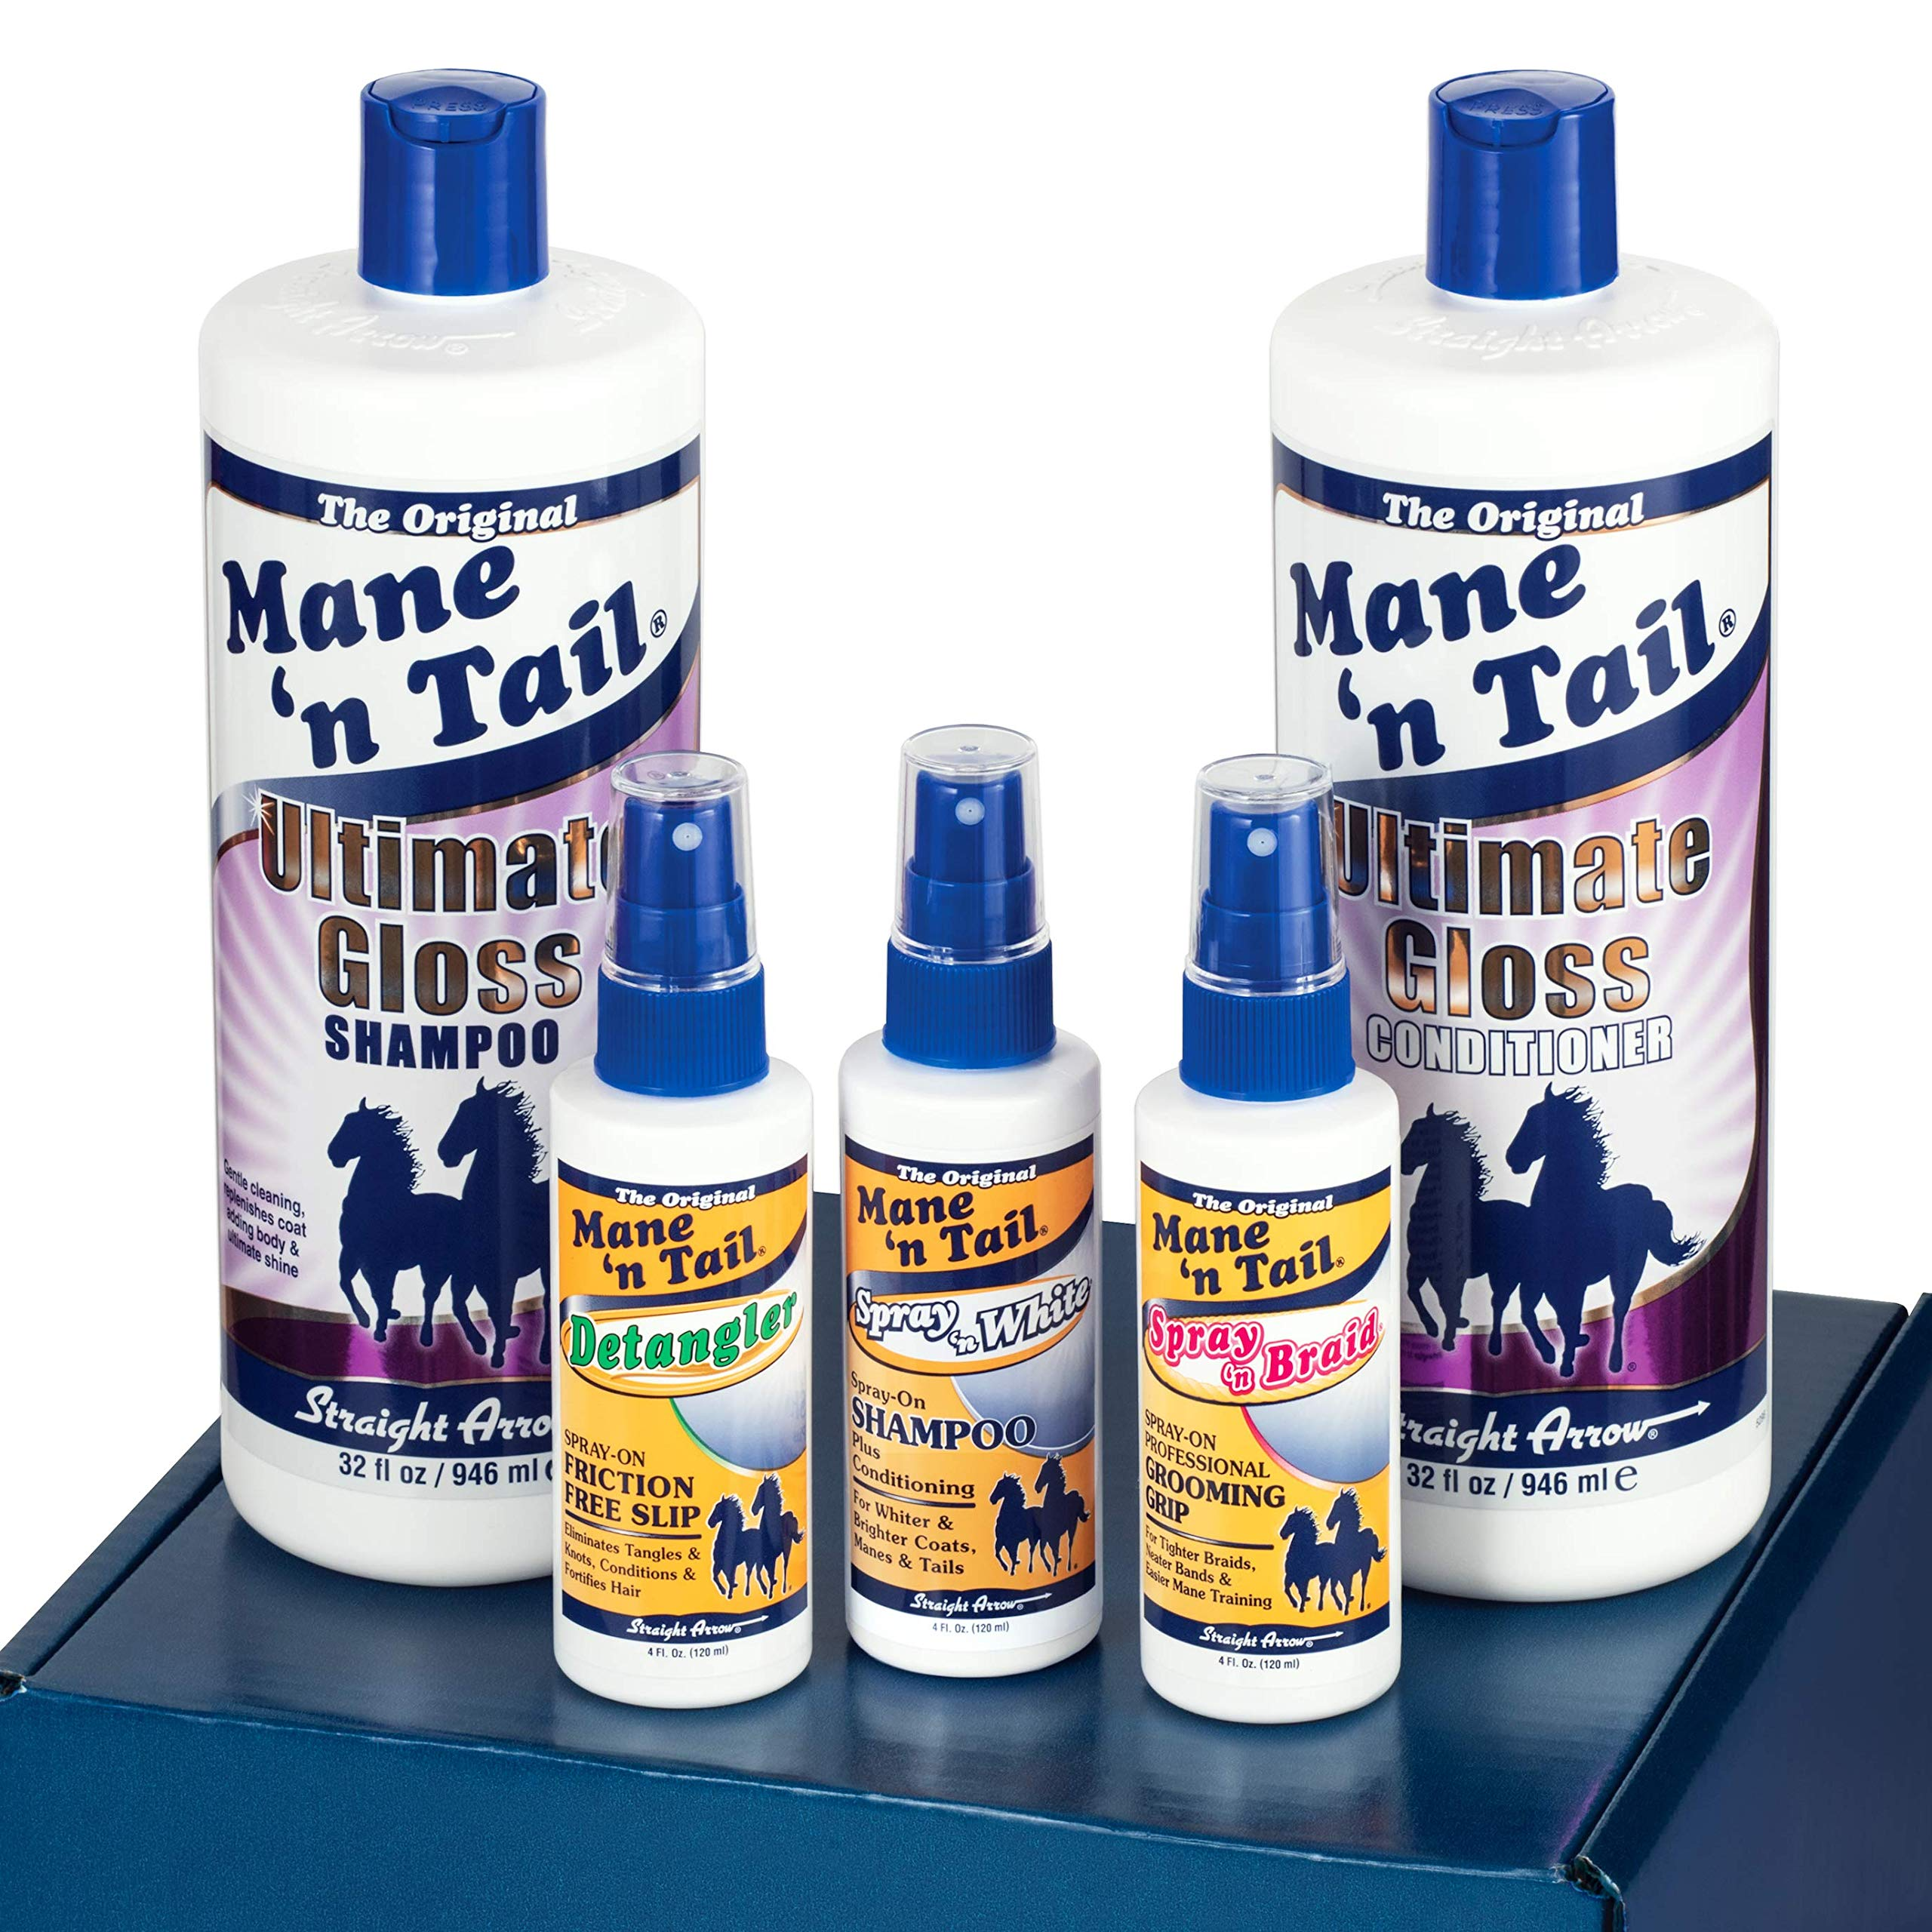 Mane 'n Tail Ultimate Gloss Winning Finish Grooming Kit5pc Includes Full Size 32 oz Ultimate Gloss Shampoo and Conditioner Made with Coconut Oil .Detangler Spray 4oz Spray 'n White 4oz Spray'n Braid by Mane 'n Tail